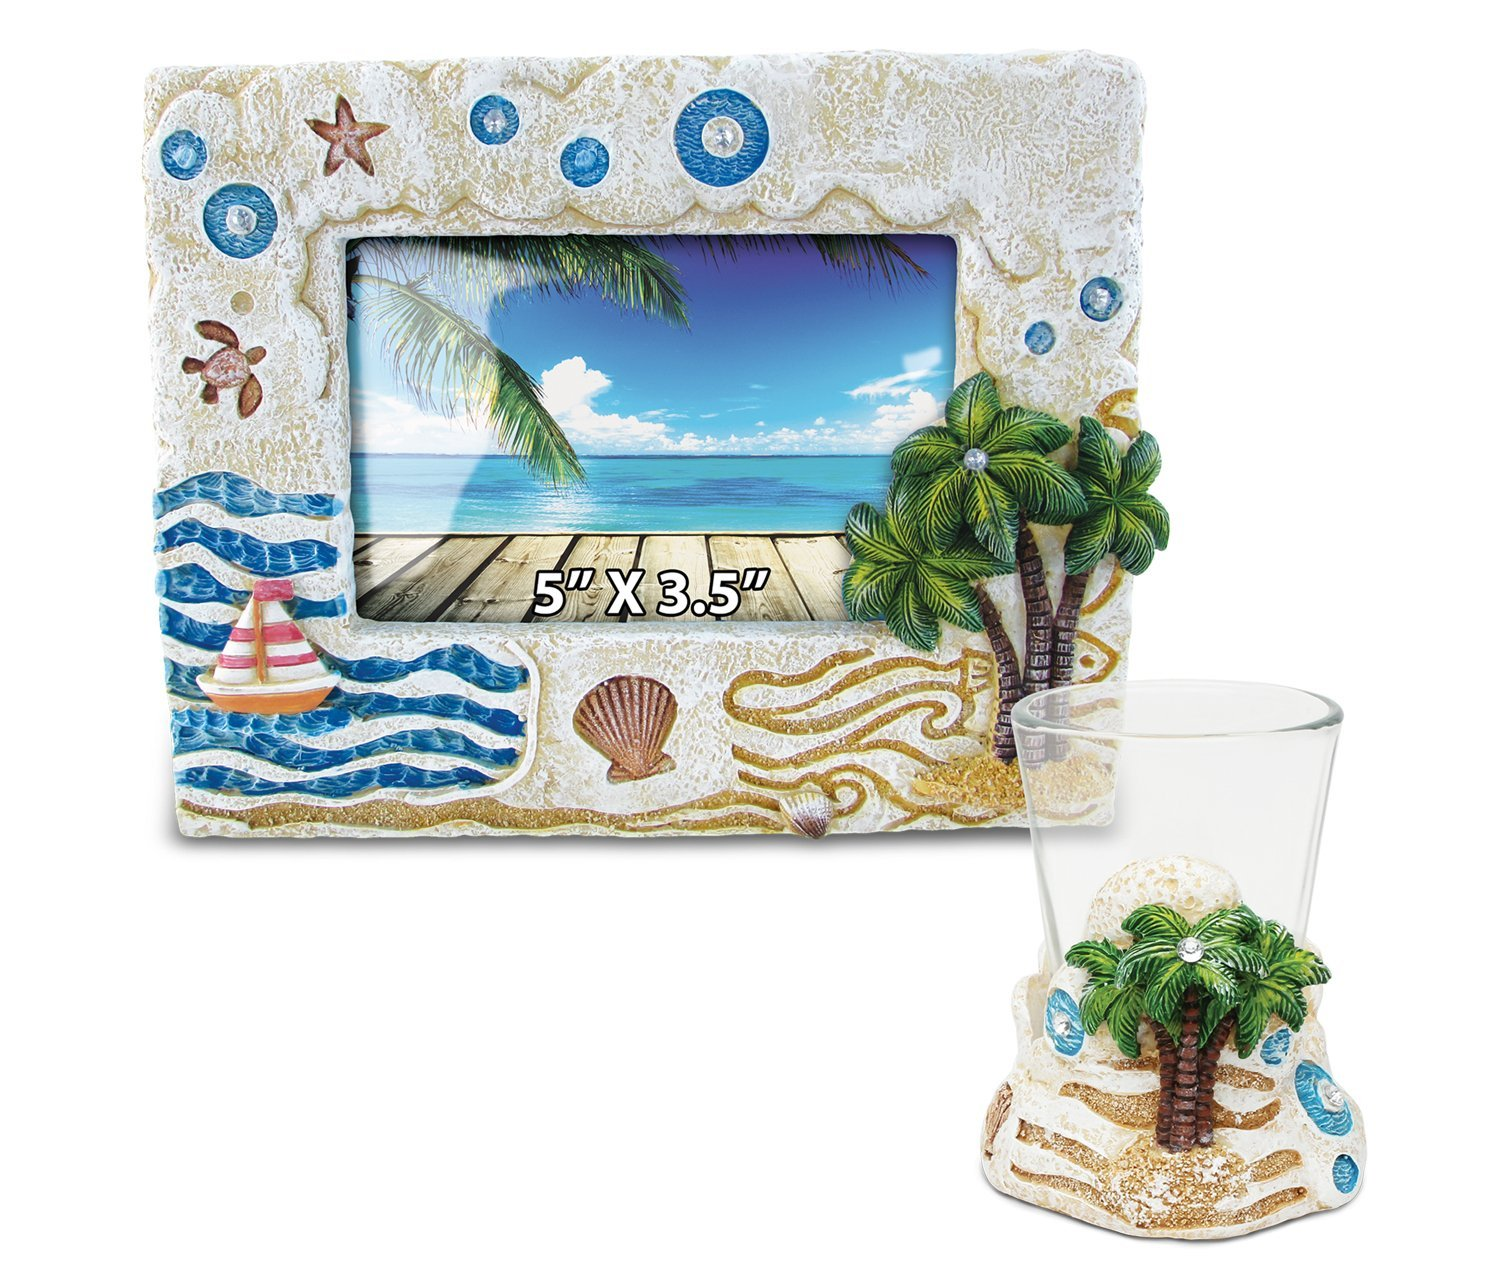 Puzzled Palm Tree Resin Stone Finish Collection including Picture/Photo Frame and Shot Glass - Picture Size 5 by 3 - Unique Elegant Gift and Souvenir